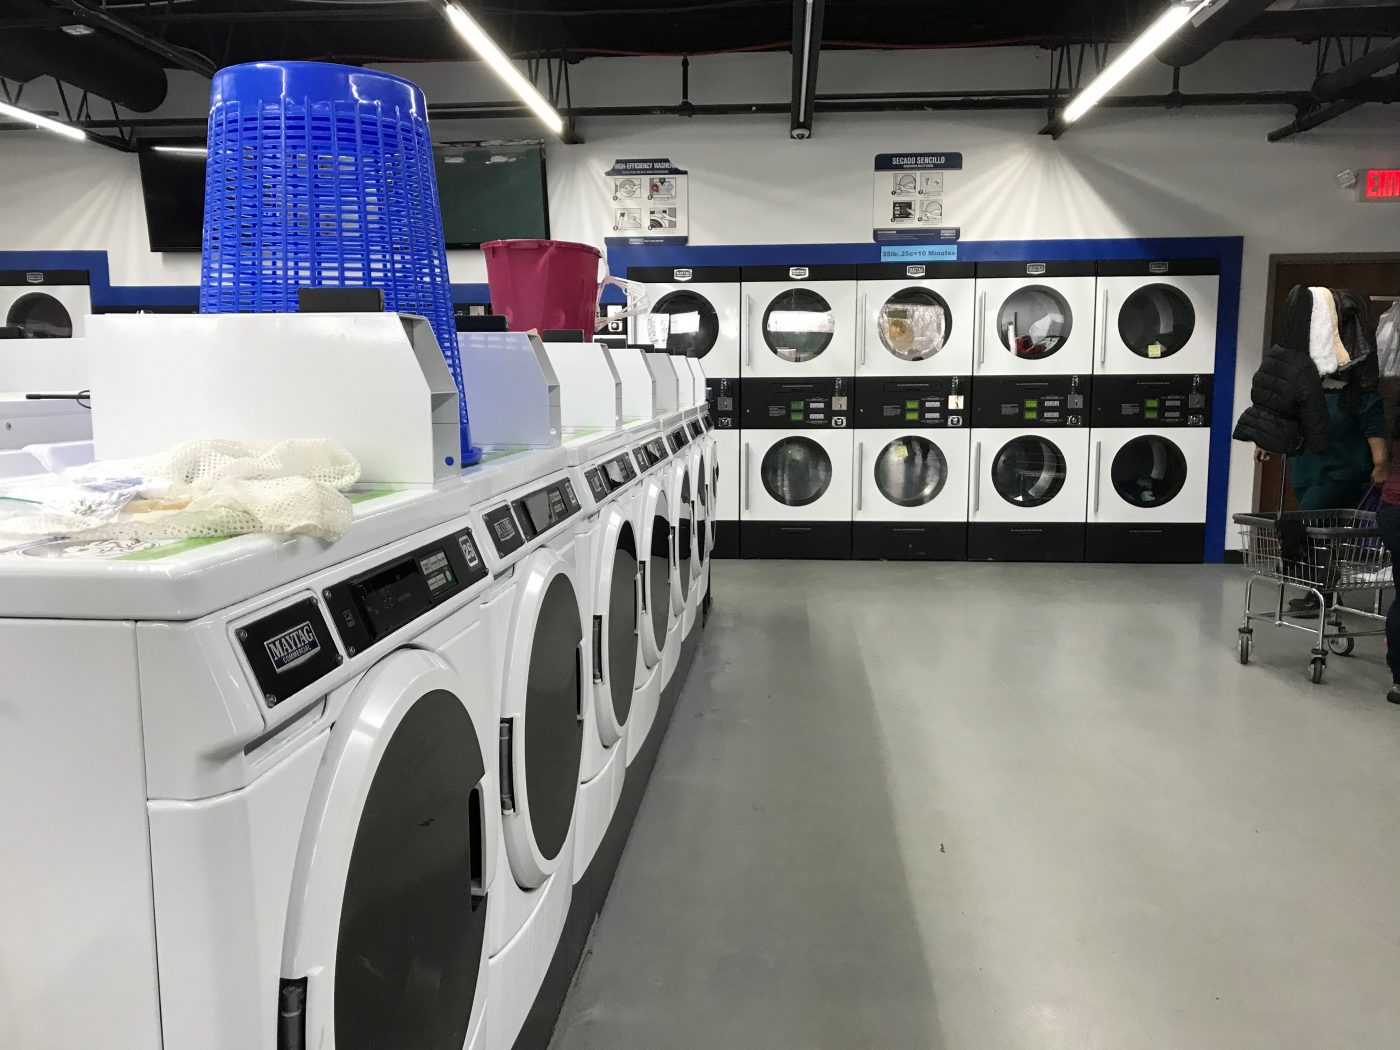 Meeting a Community's Needs: Laundry & More